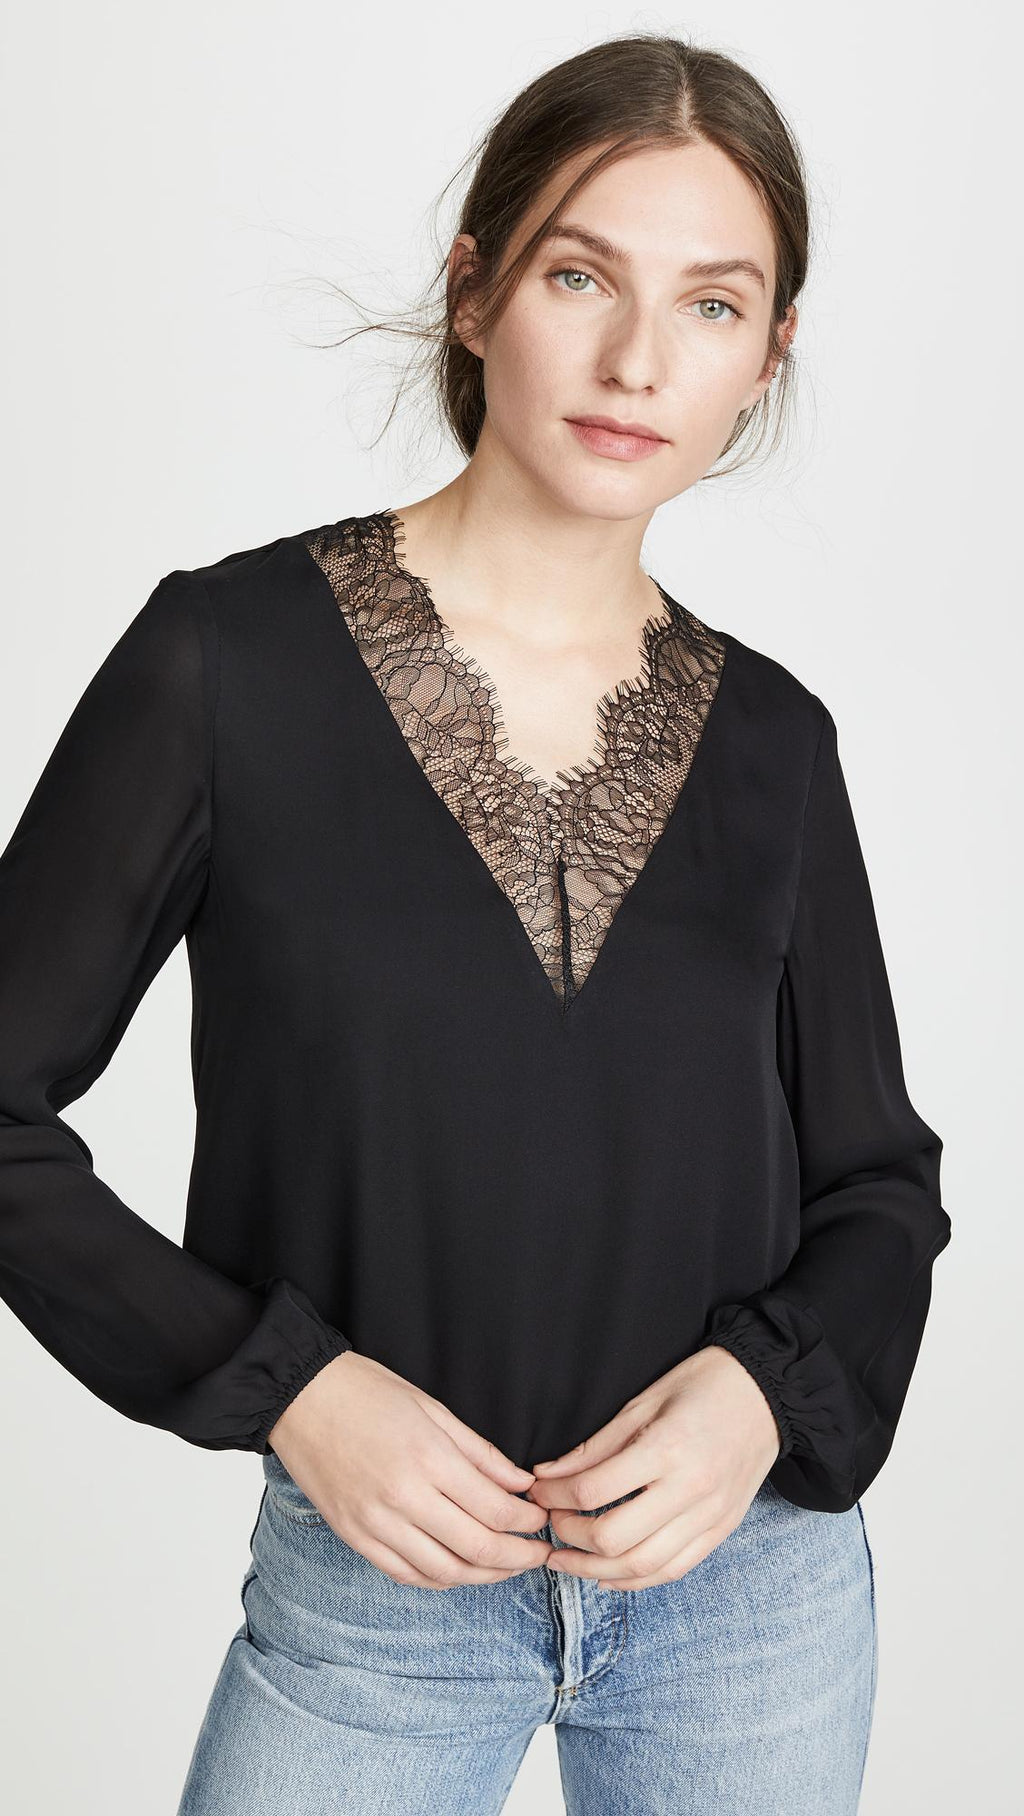 CAMI NYC V-Neck Blouse with Lace. Haut avec dentelle